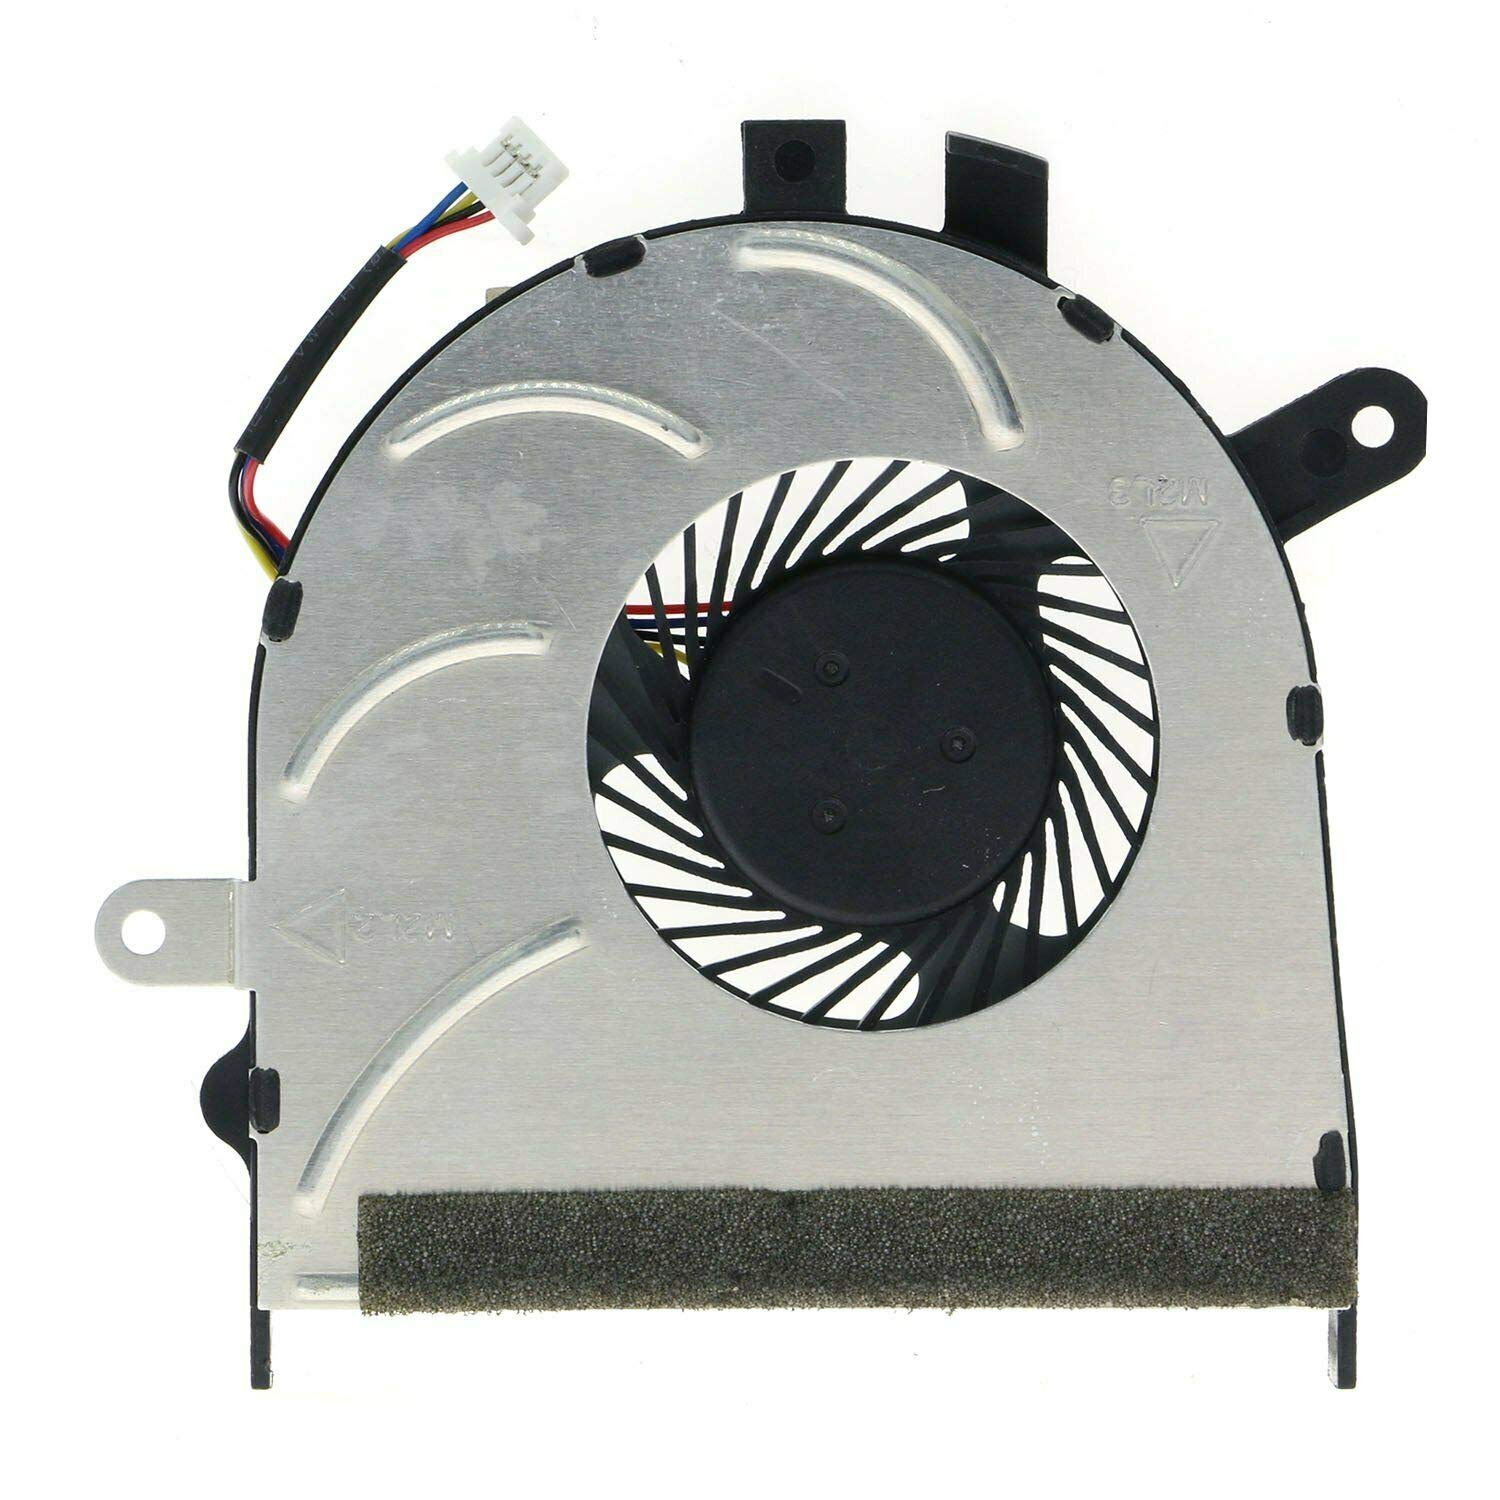 Replacement CPU Cooling Fan Compatible with Dell Inspiron 13-7347 7348 7353 7352 7359, Inspiron 15 7000 7558 7568 Series Laptop P/N: 0DW2RJ 03NWRX